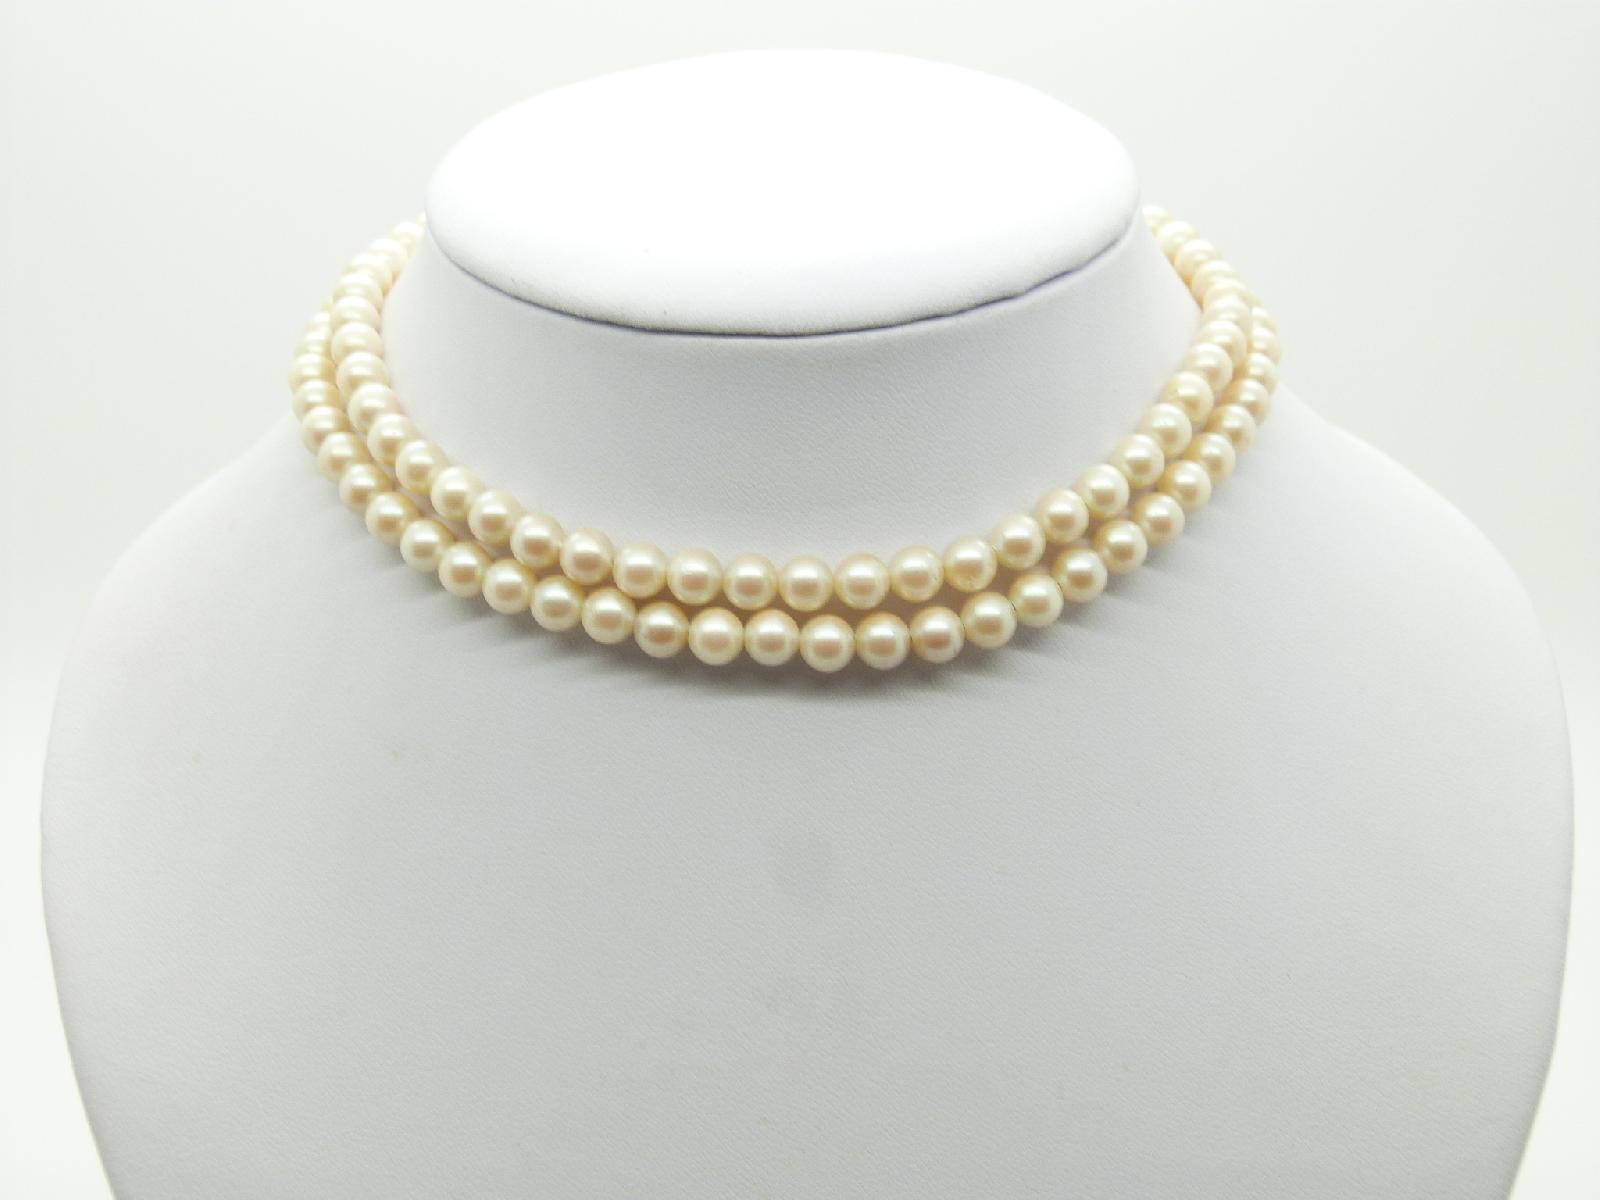 Vintage 50s Long Quality Glass Faux Pearl Bead Necklace 835 Silver Clasp 70cms Long